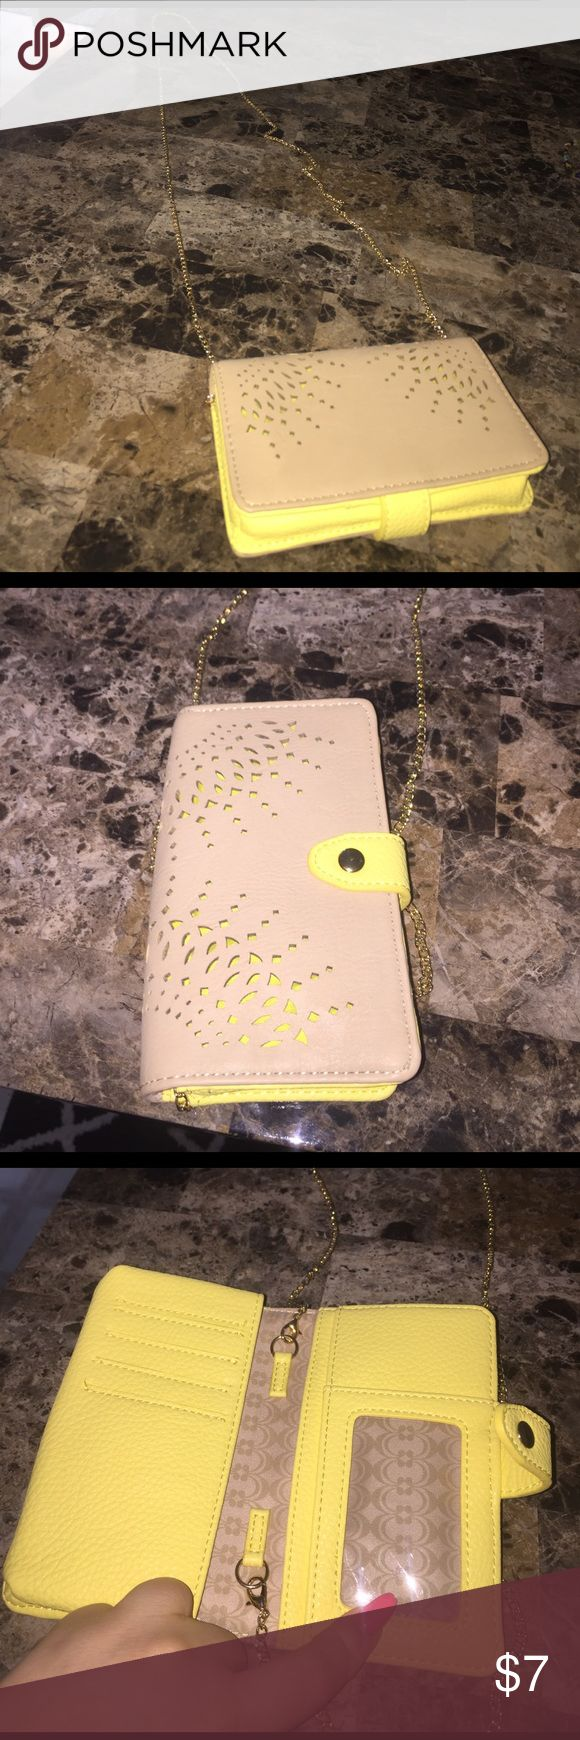 Brown and yellow wallet with chain Great for a night out Charming Charlie Bags Wallets